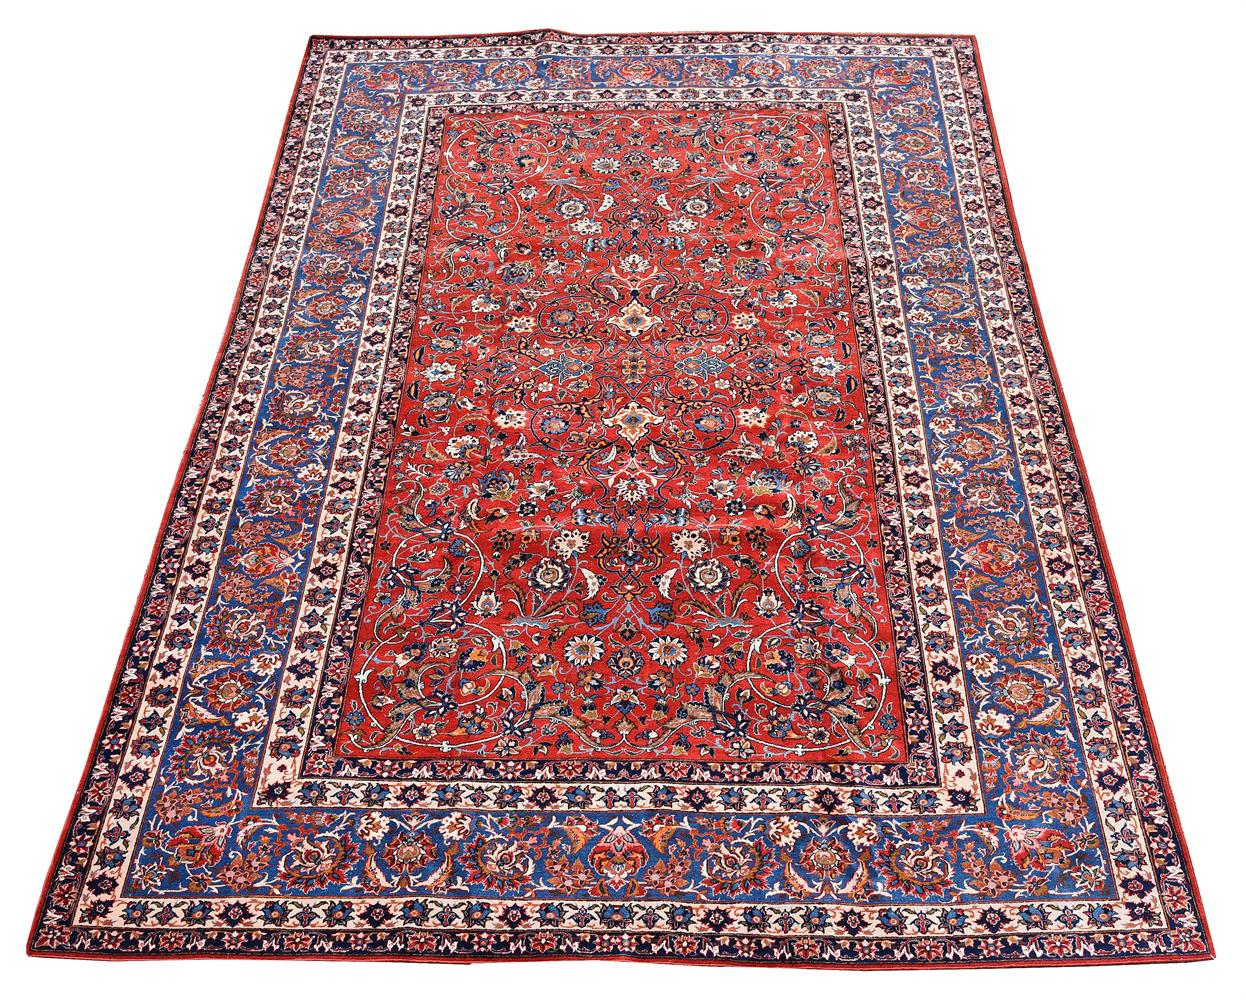 AN ISFAHAN CARPET, approximately 338 x 229cm